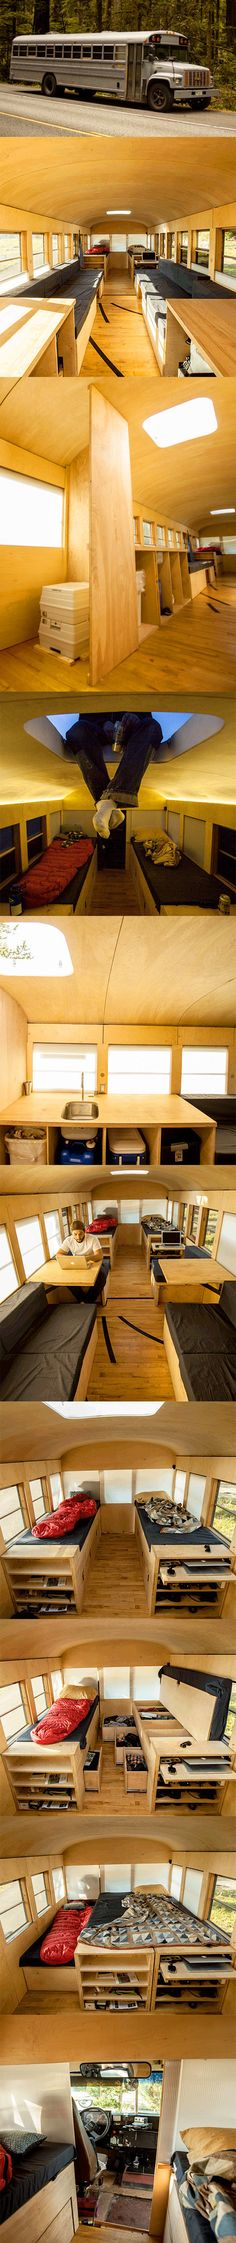 Architecture student Hank Butitta converted old school bus into a 225 square foot mobile home with small kitchen, living room, and bedroom. WHAT CODE DO THESE GUYS COME UNDER? RV